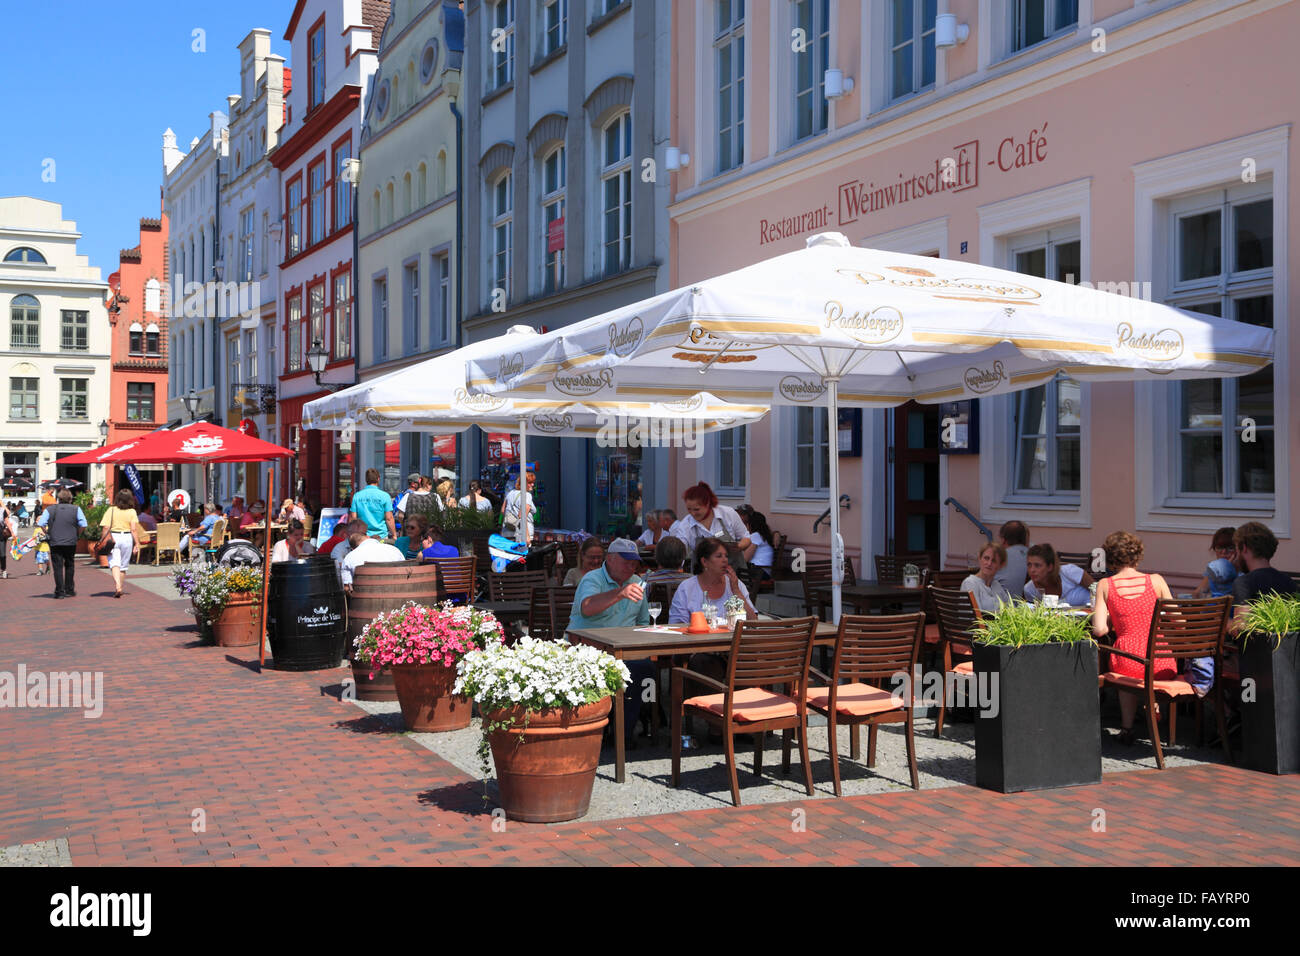 Houses with cafes at market square,Wismar, Baltic Sea, Mecklenburg Western Pomerania, Germany, Europe - Stock Image